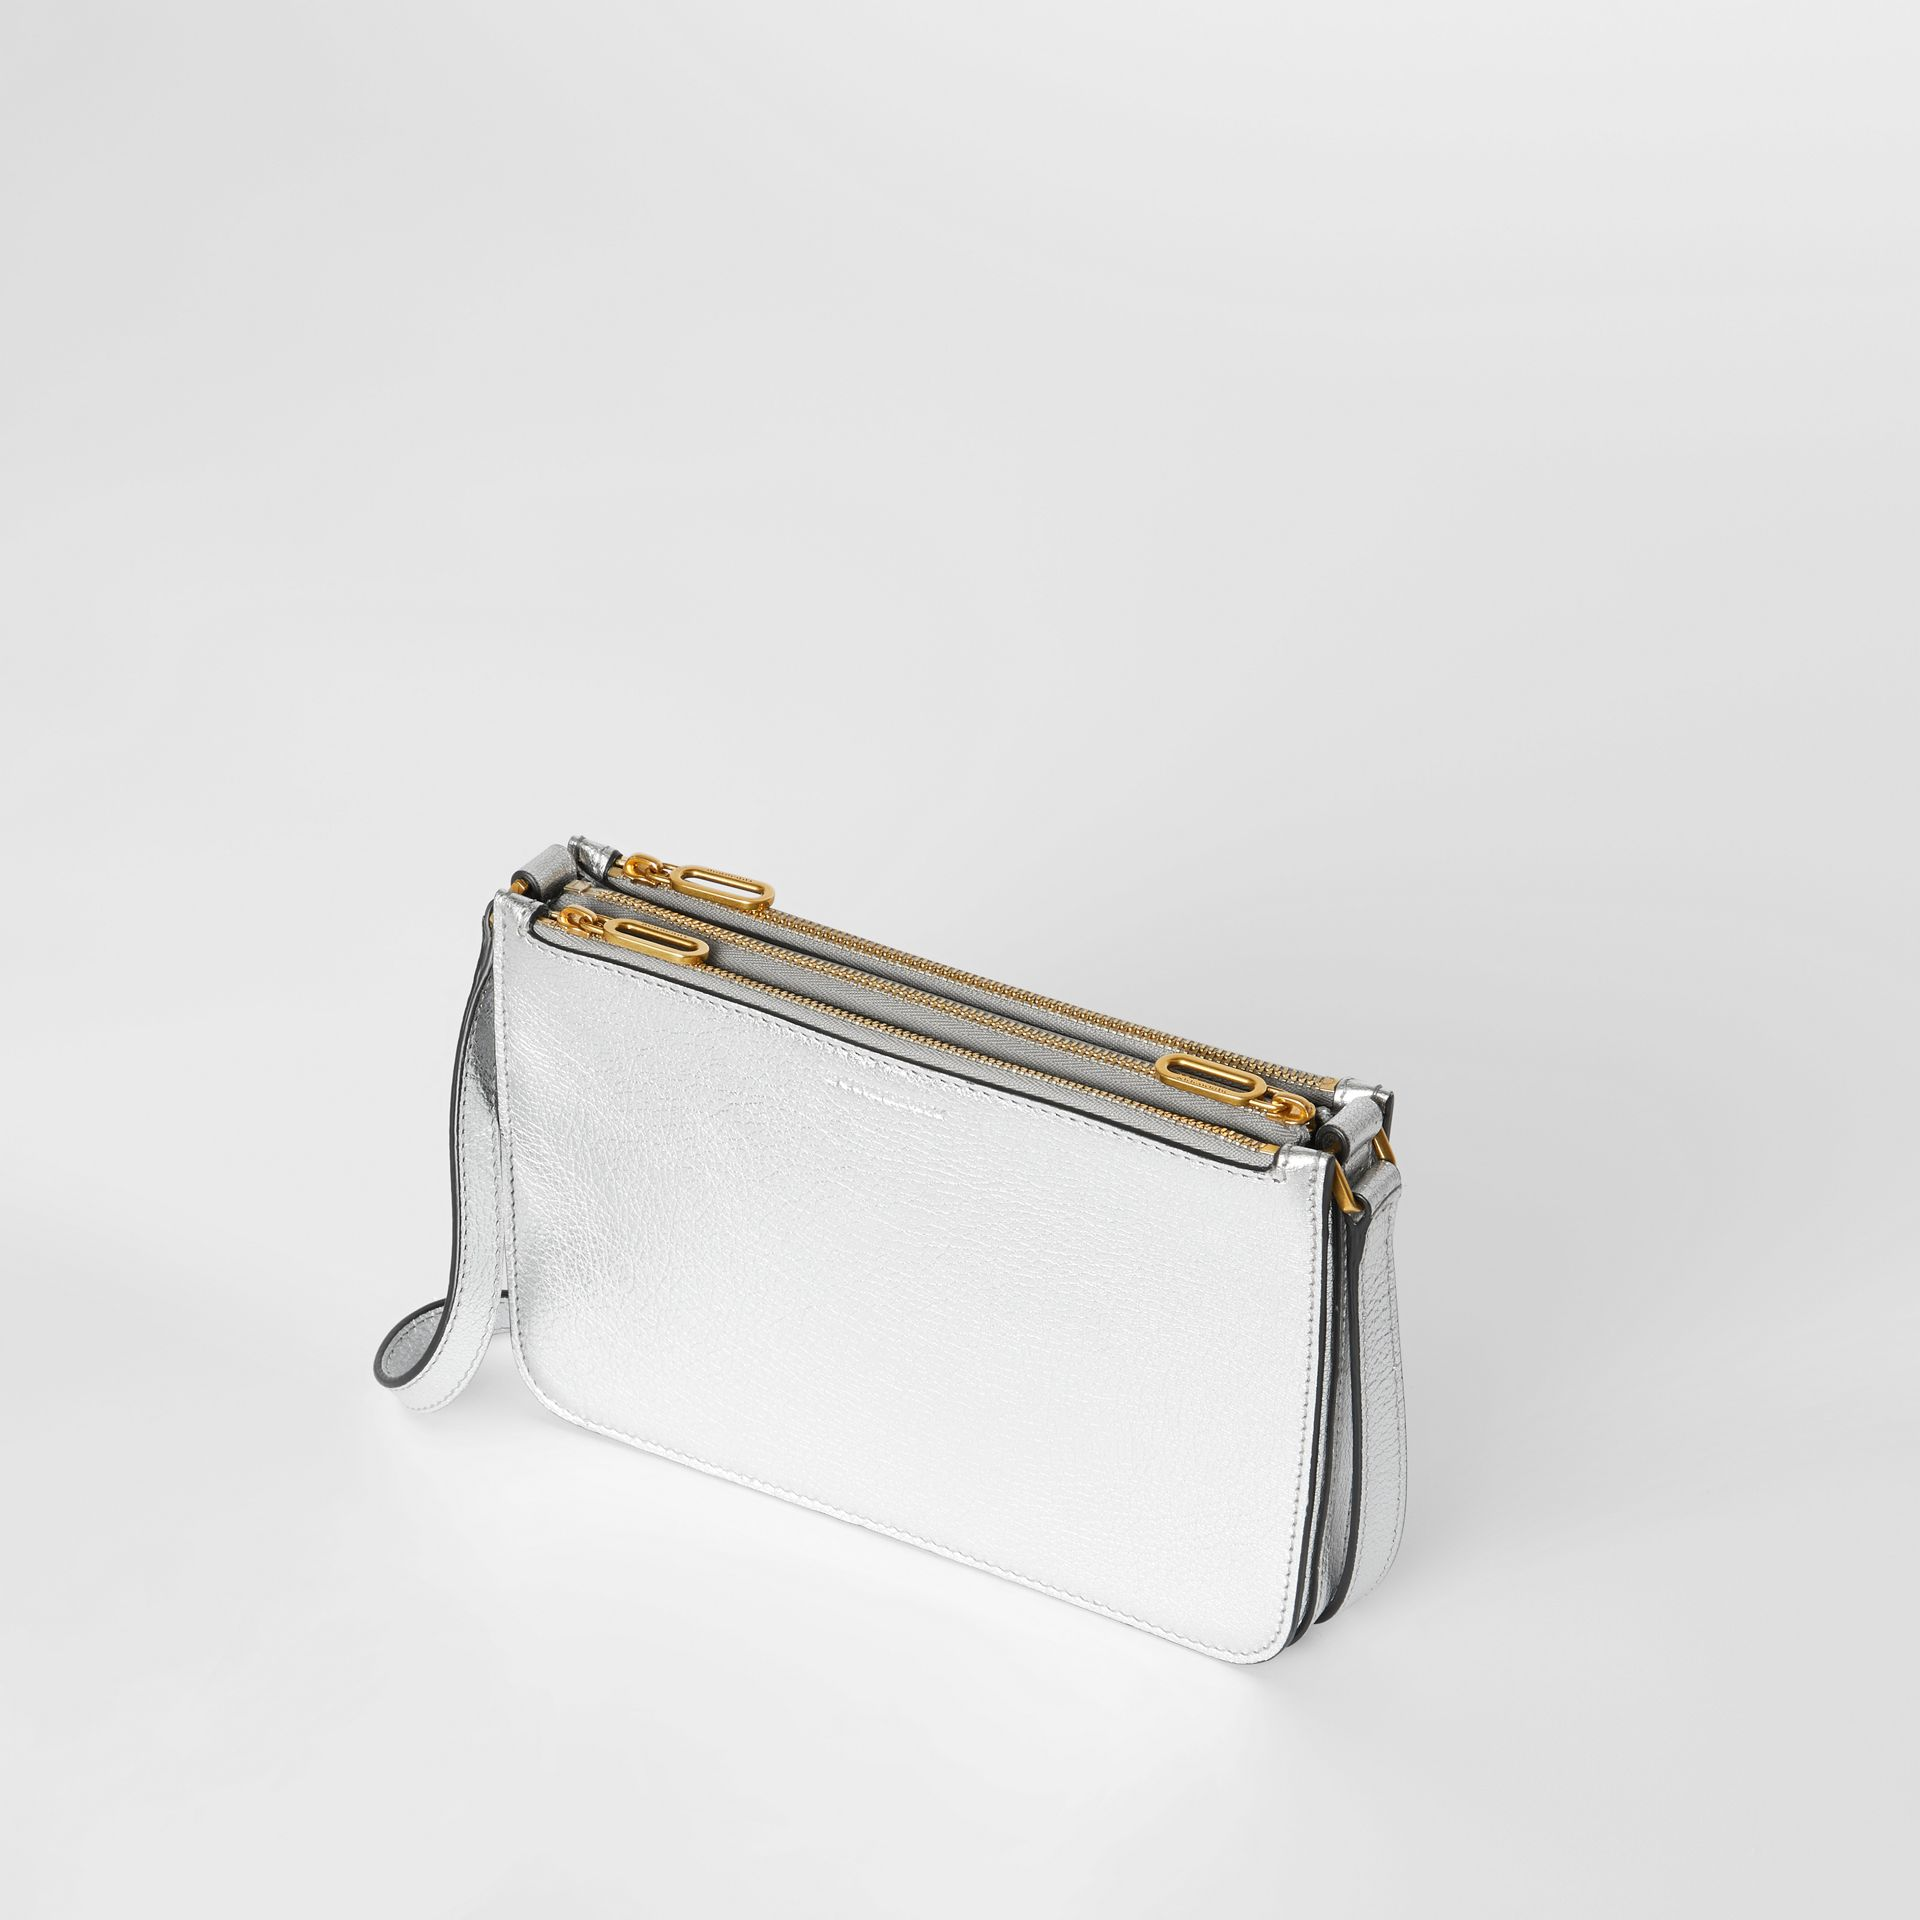 Triple Zip Metallic Leather Crossbody Bag in Silver - Women | Burberry - gallery image 4